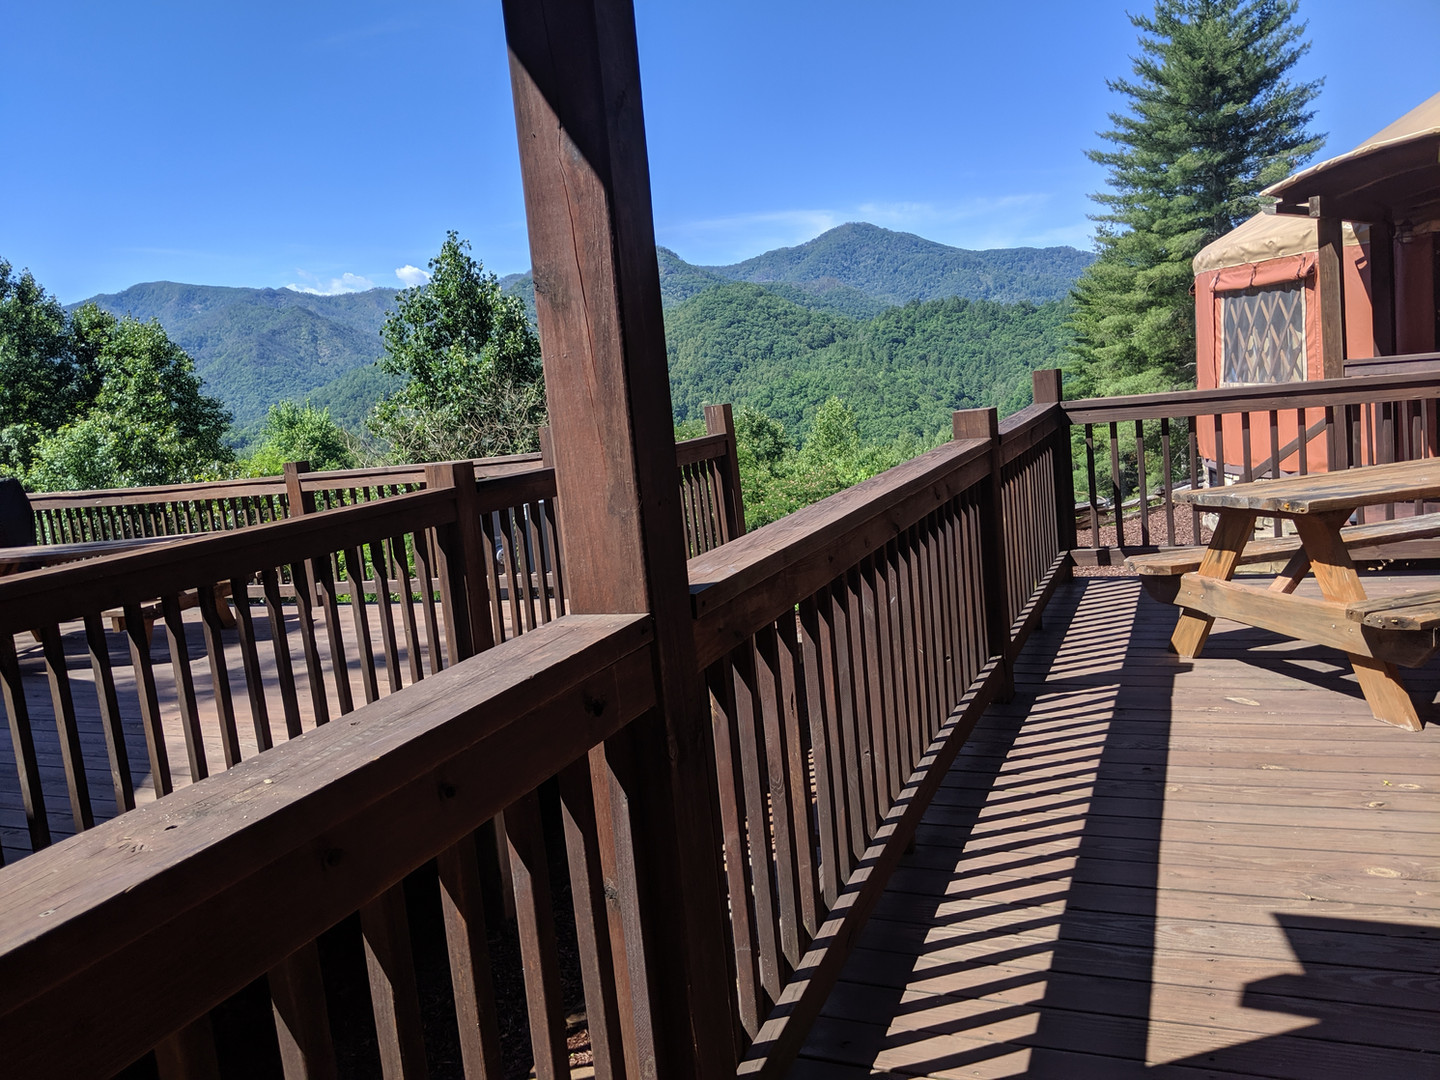 The view of the Nantahala Gorge is stunning from the Tsali's deck.